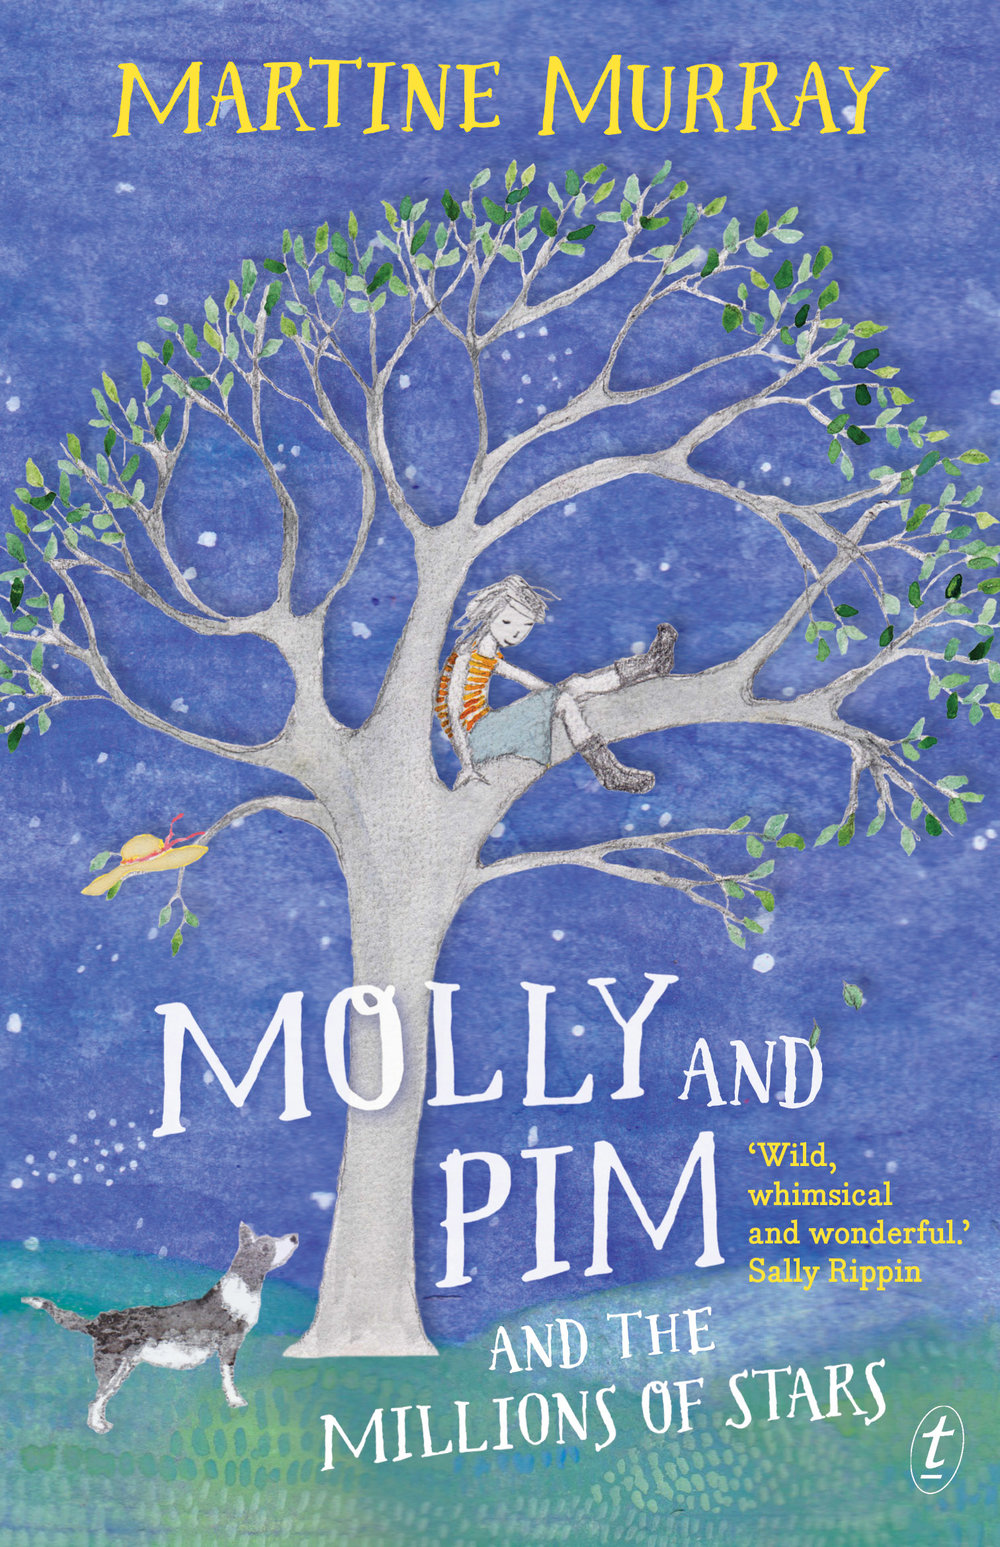 Molly-and-Pim.jpg